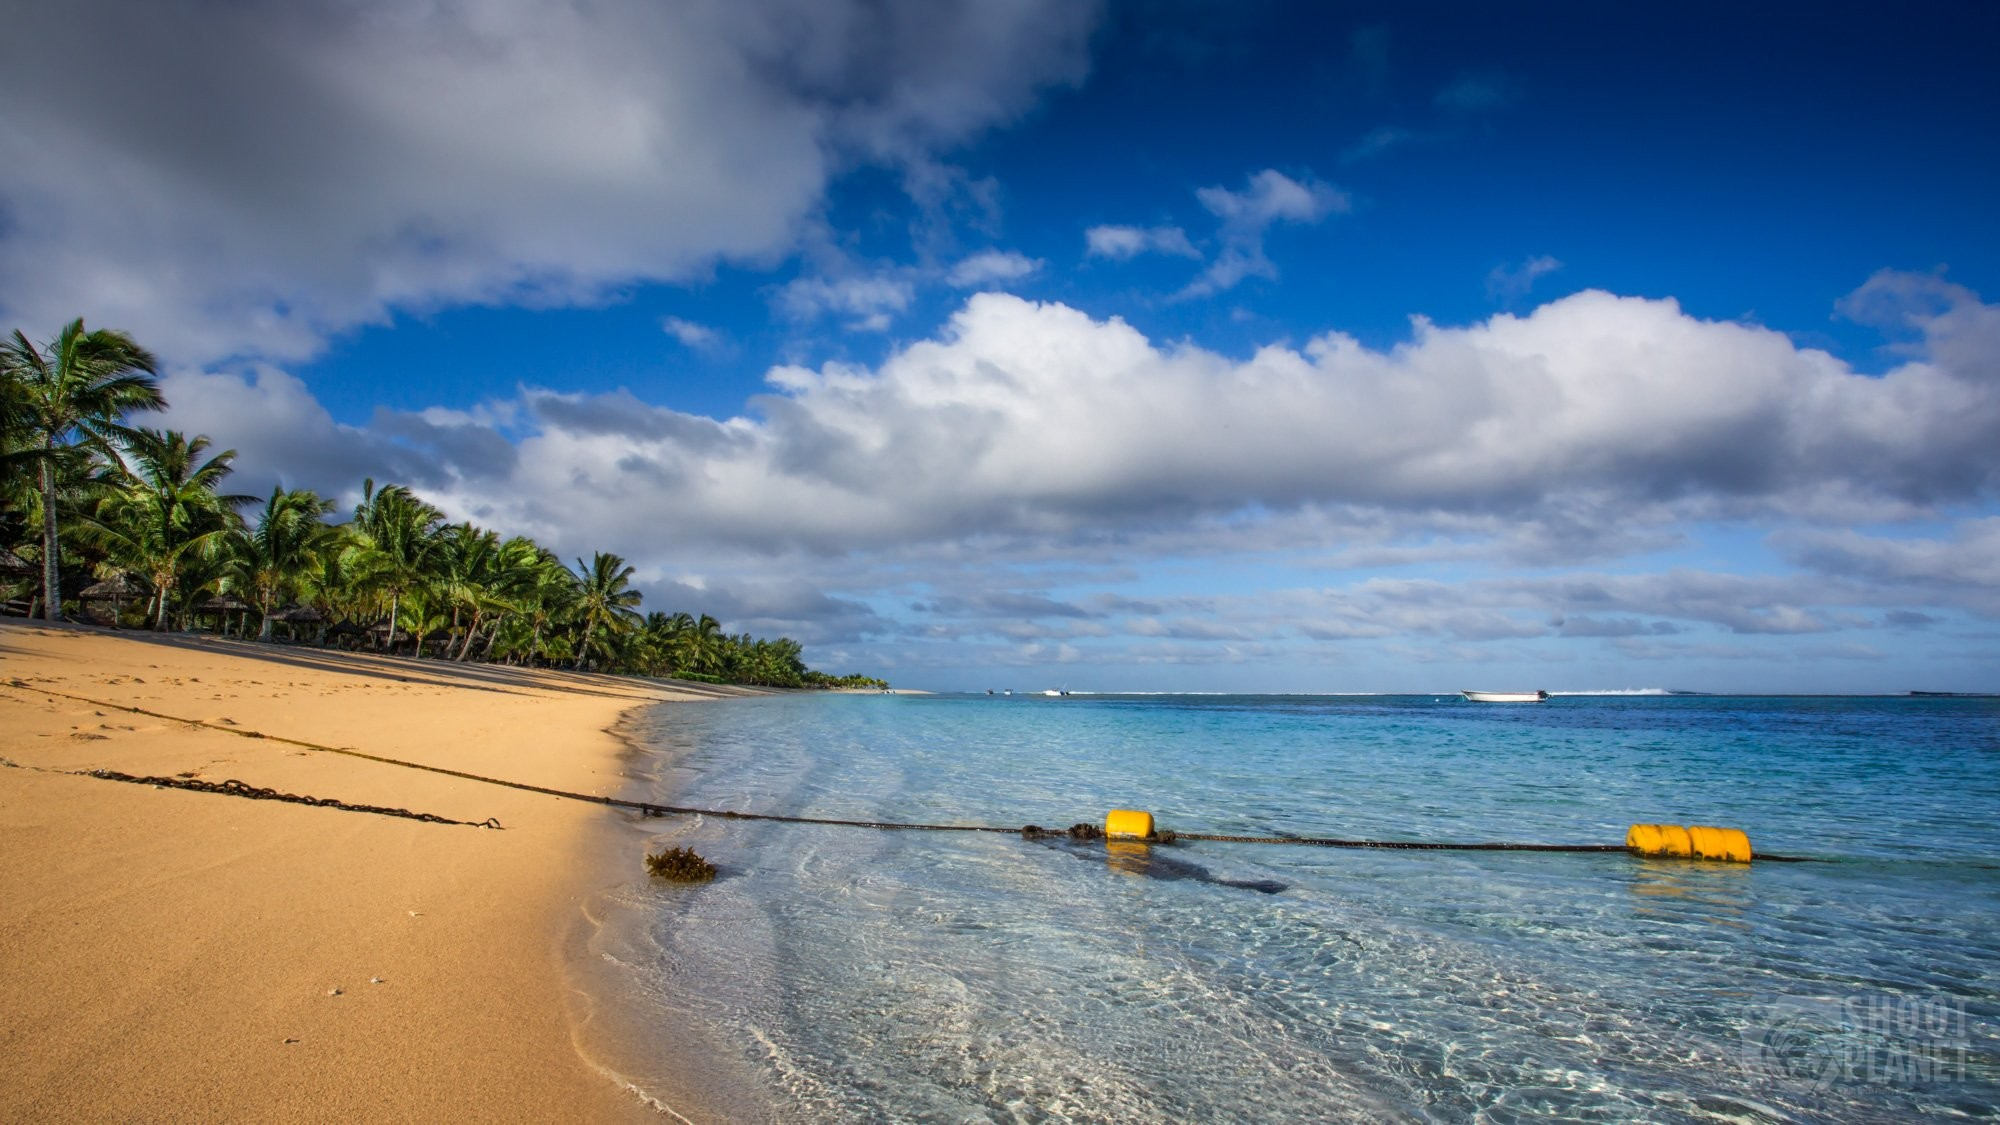 Golden sand beach and coconut trees, Mauritius